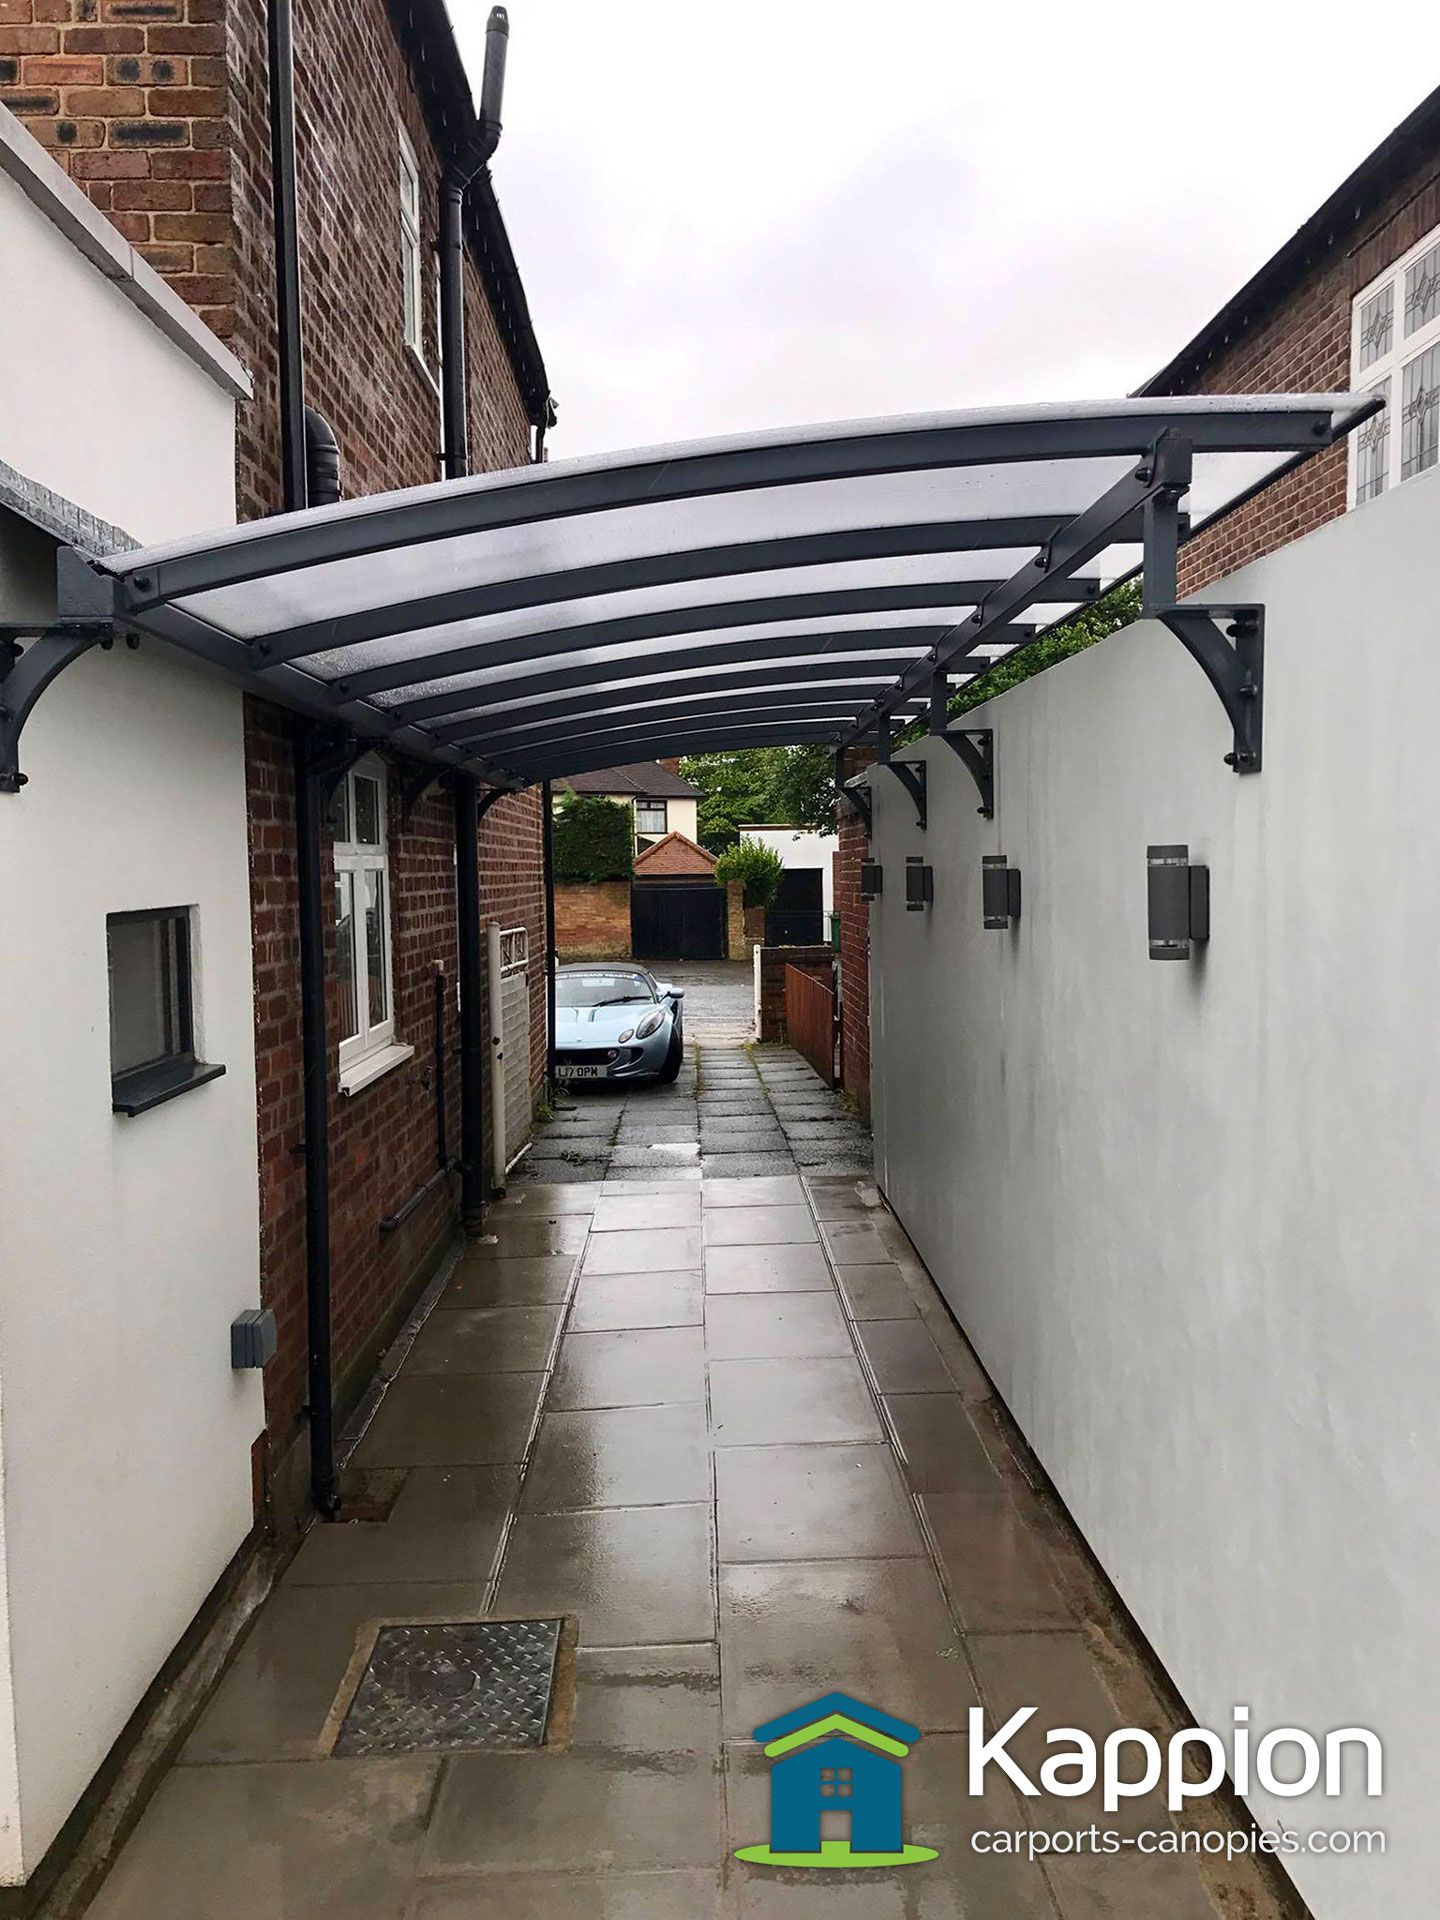 Driveway and Bungalow Carports. Custom designed and manufactured. & Driveway and Bungalow Carports. Custom designed and manufactured ...